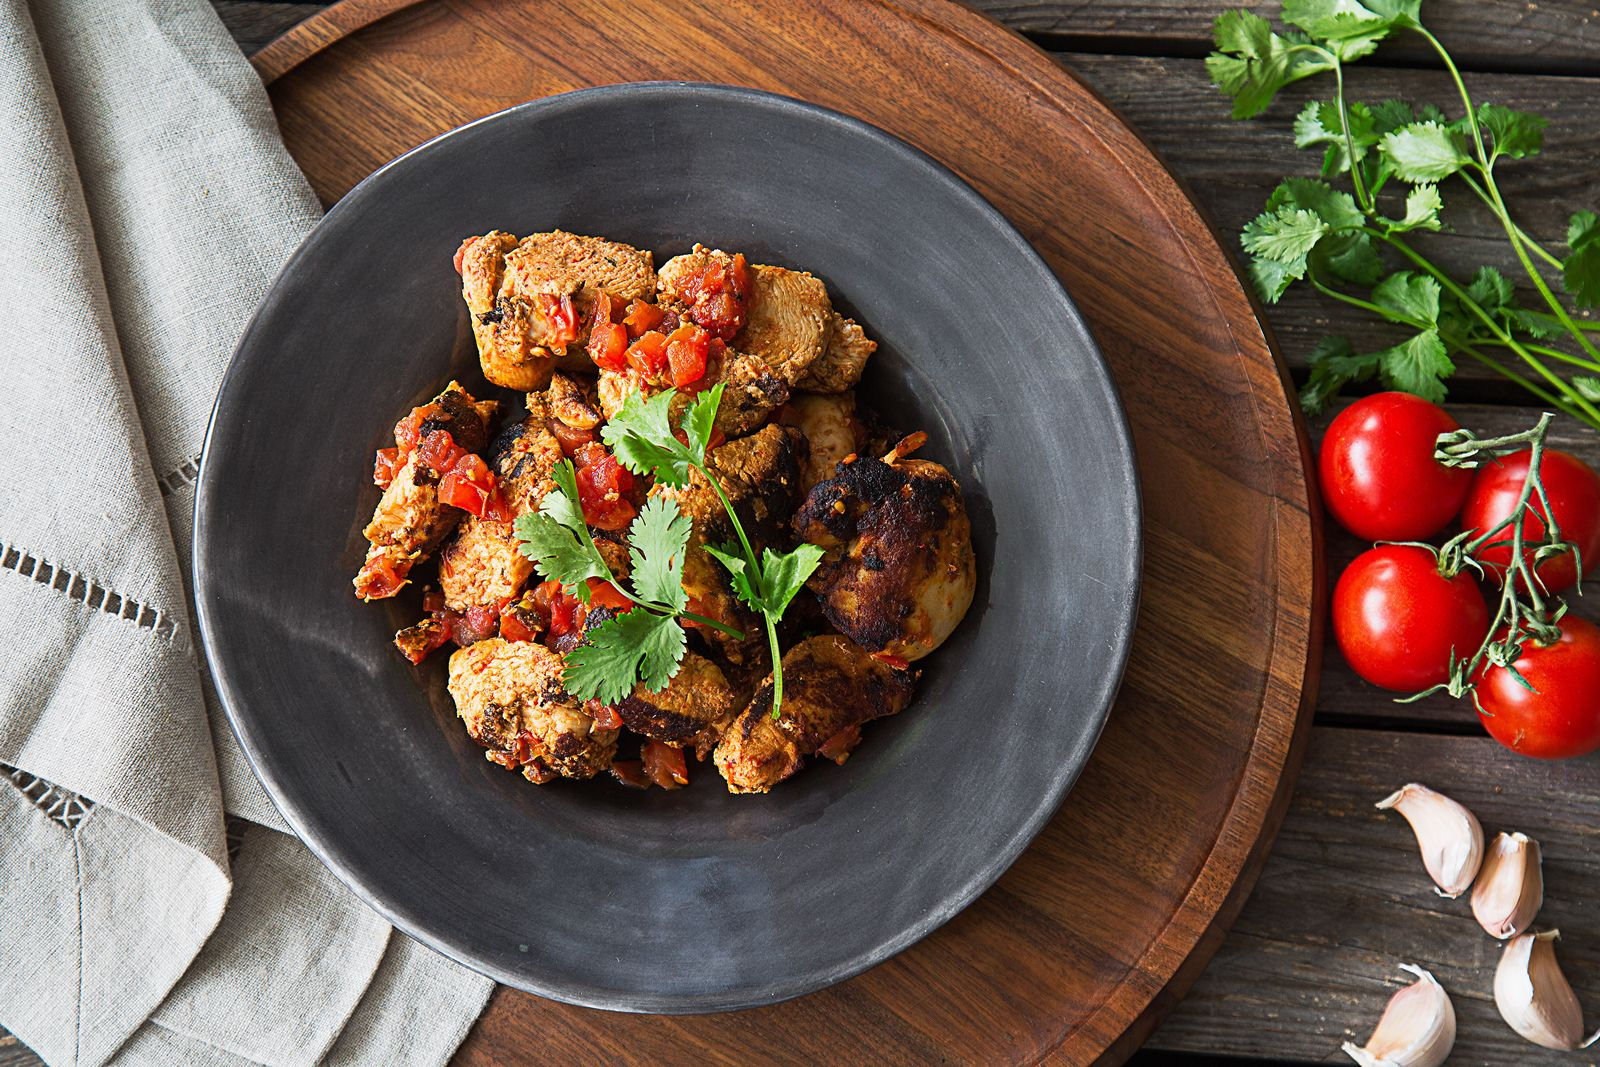 SAJJ Mediterranean has added chicken kabobs, a long-time favorite from its catering menu, to its in-store menu at all locations in California.